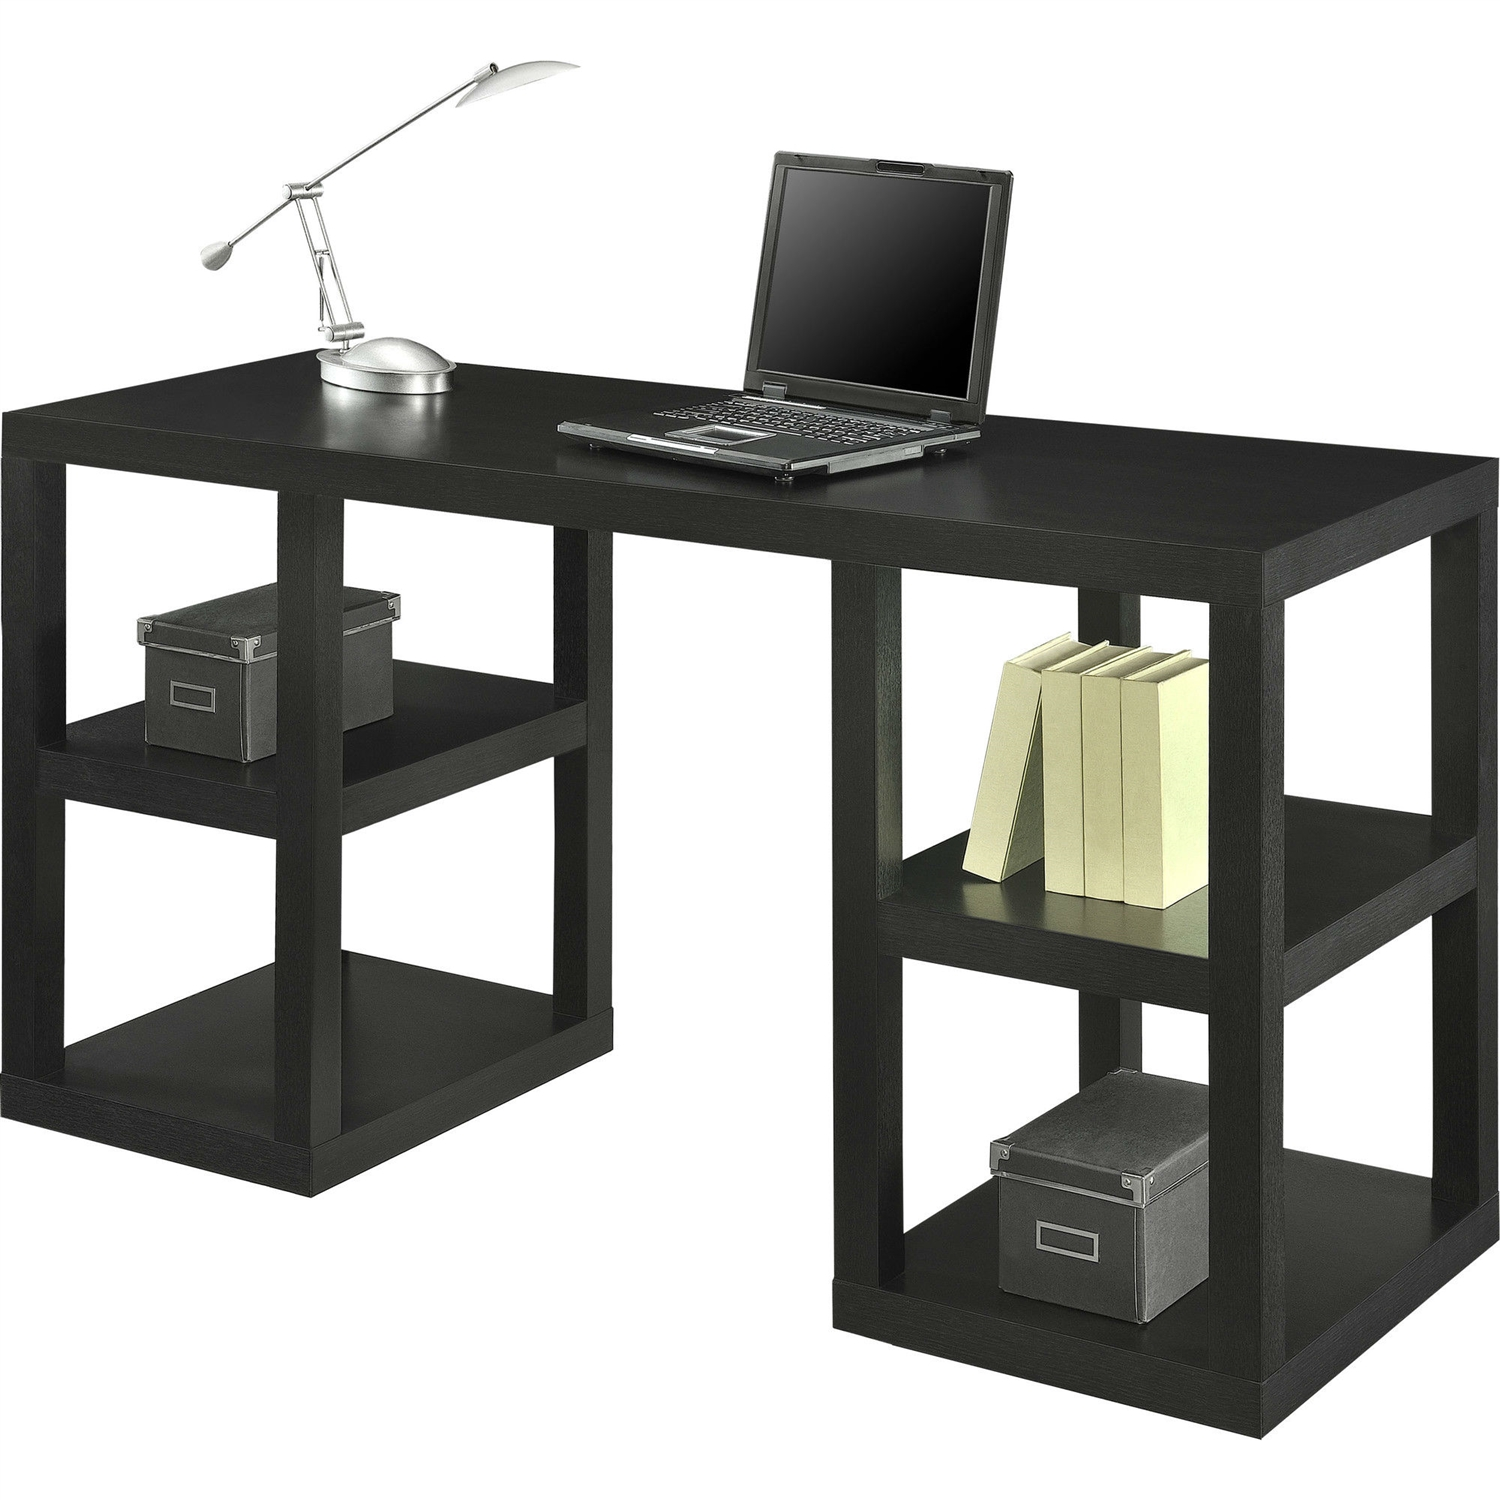 Modern Home Office Computer Desk In Black Oak Wood Finish Fastfurnishings